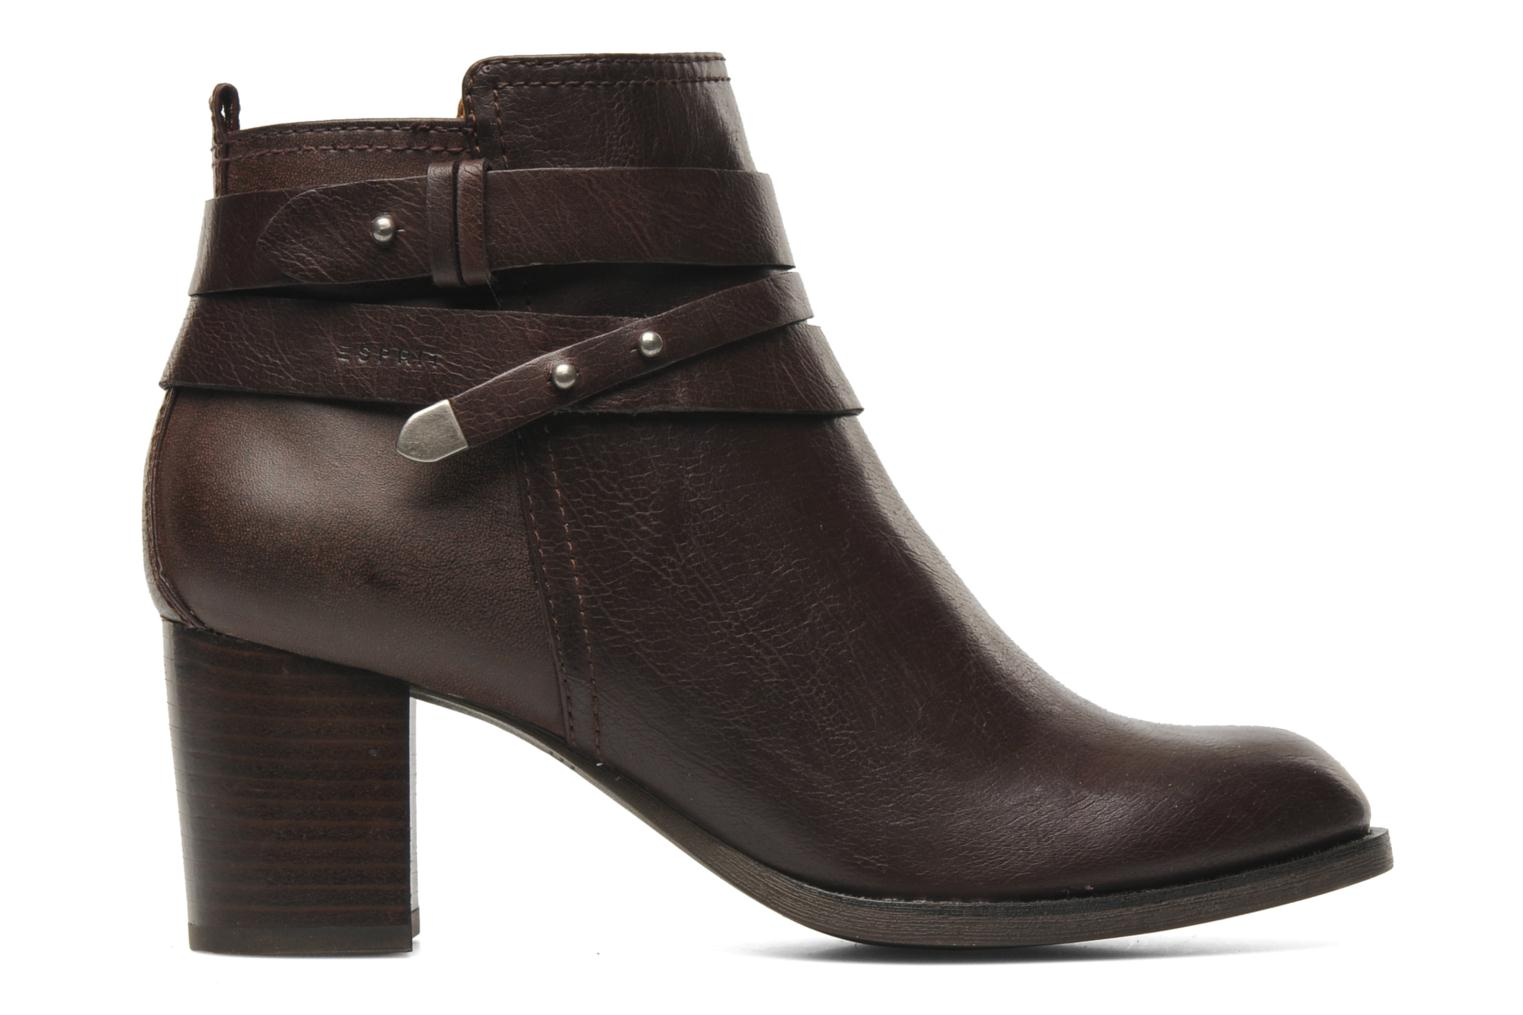 esprit estonia bootie2 ankle boots in brown at 181525. Black Bedroom Furniture Sets. Home Design Ideas